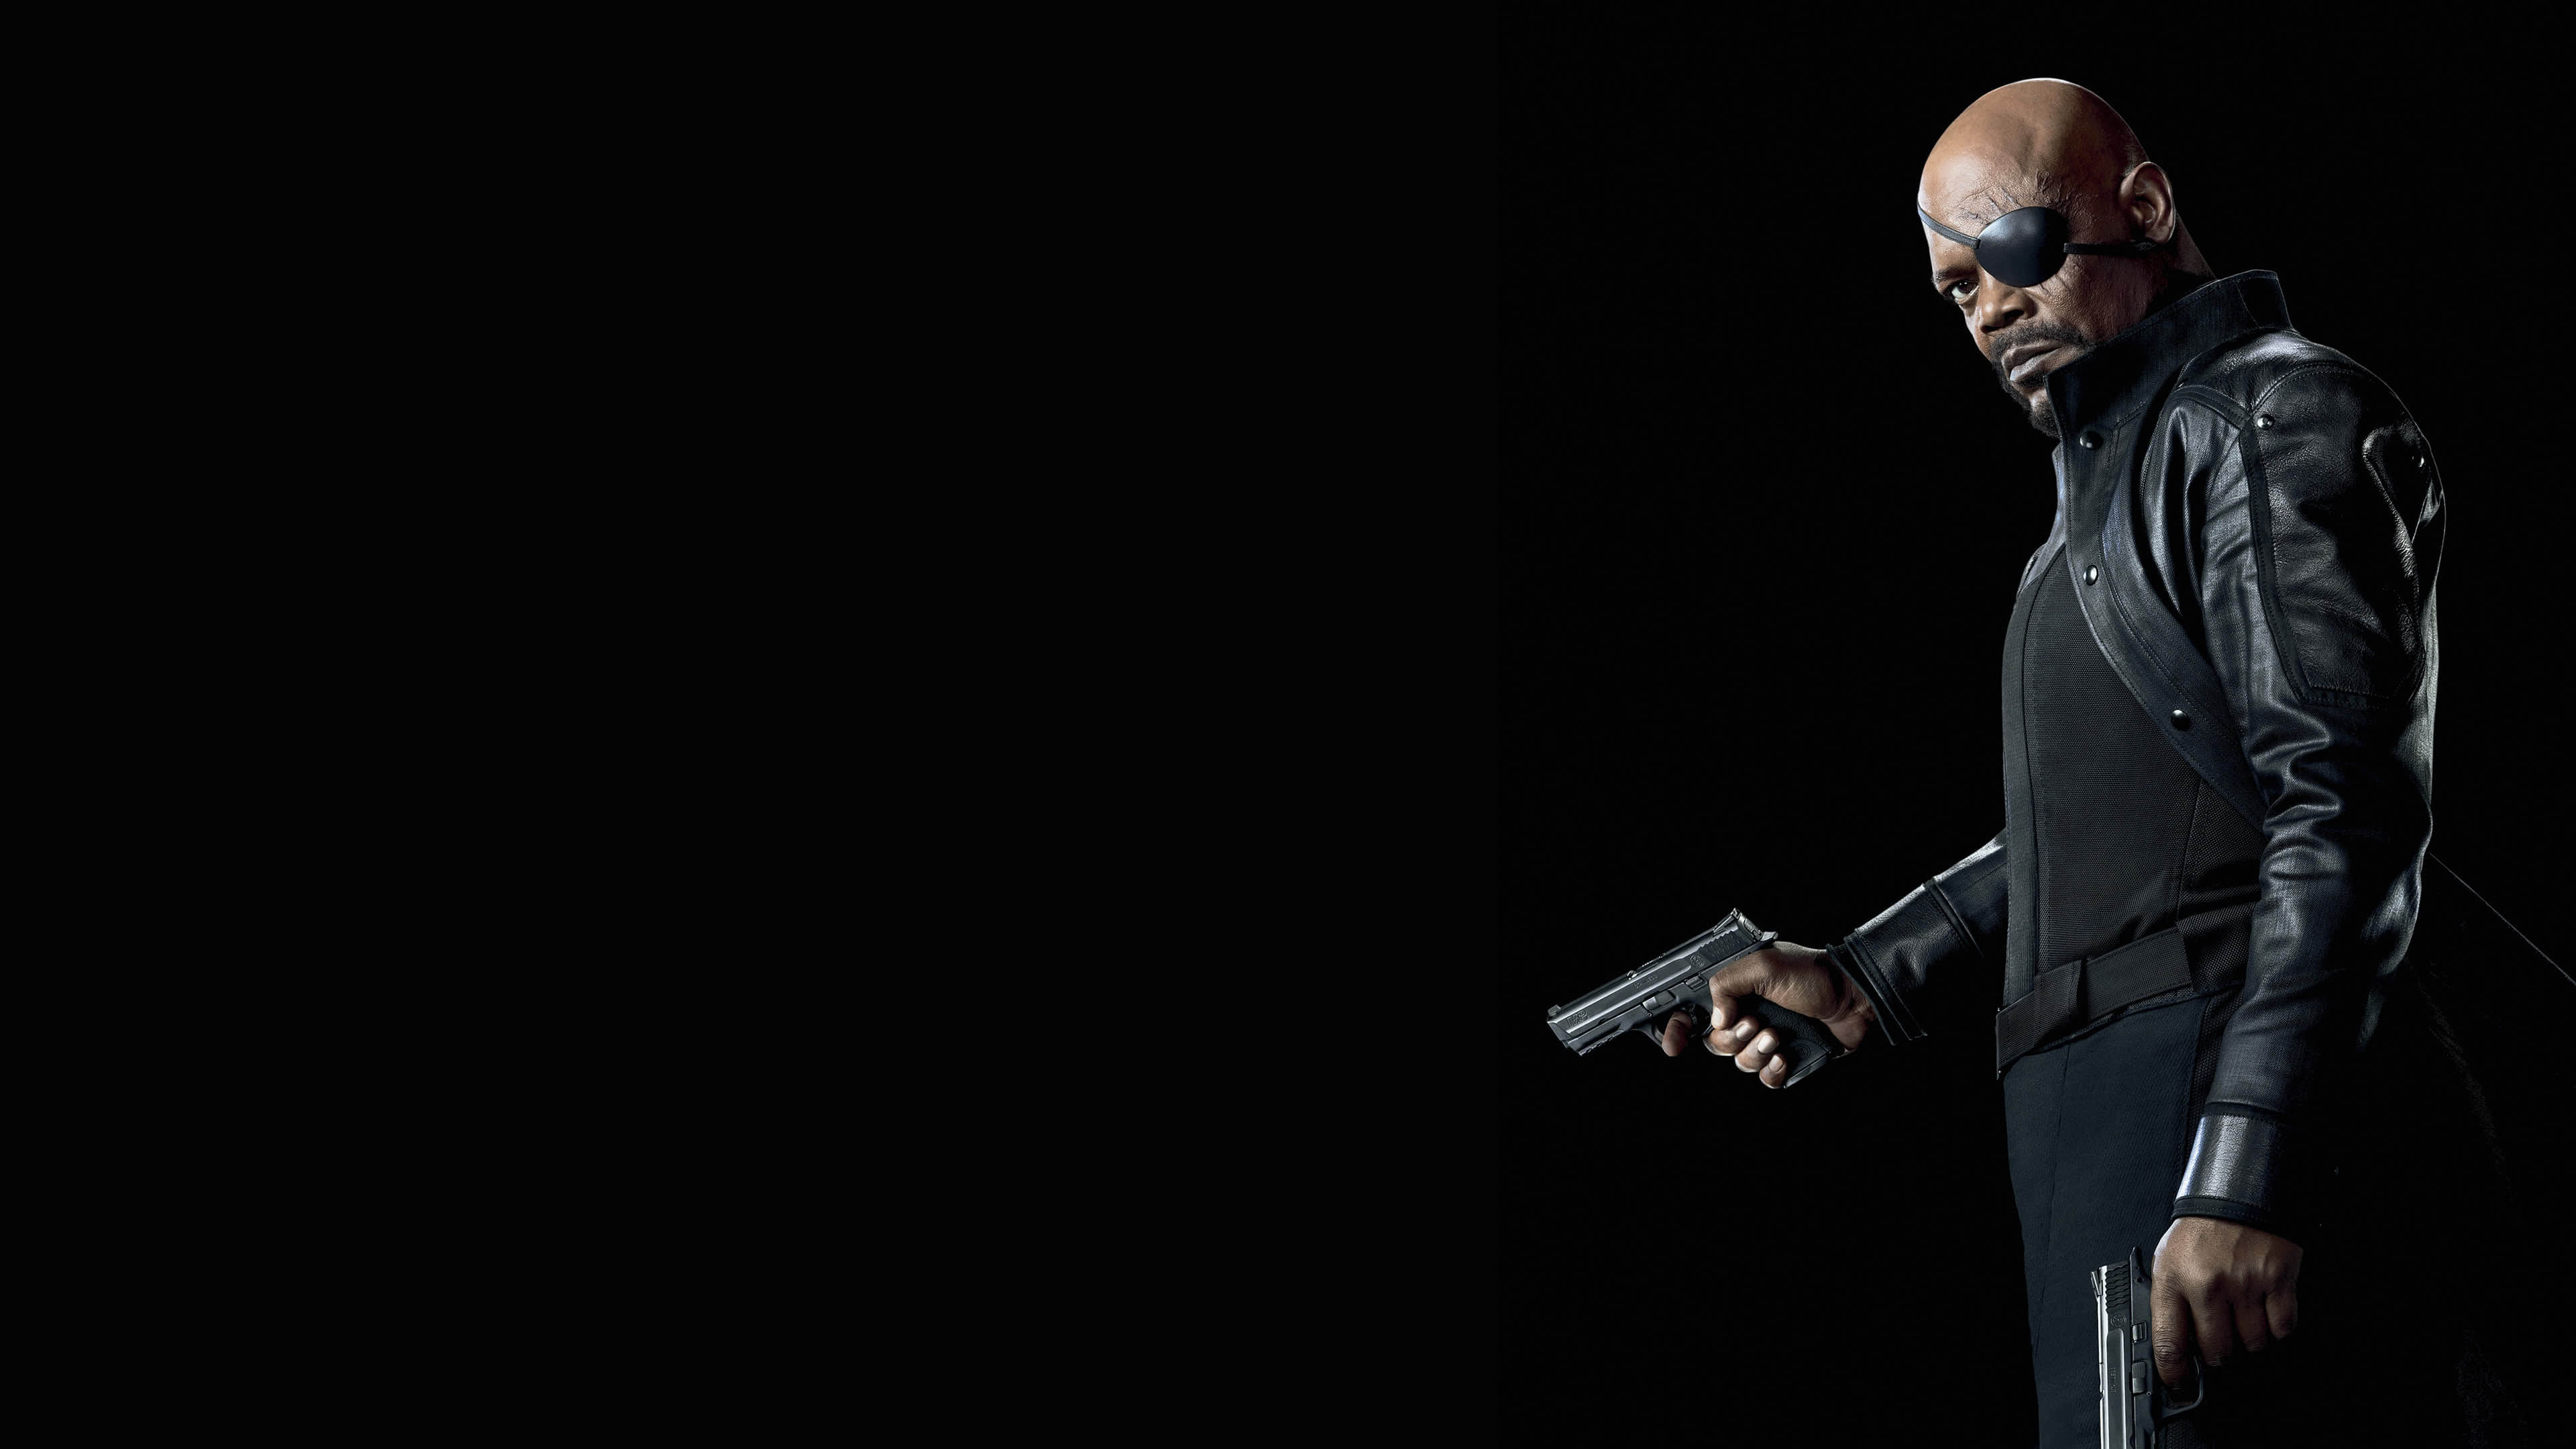 nick fury samuel l jackson uhd 4k wallpaper